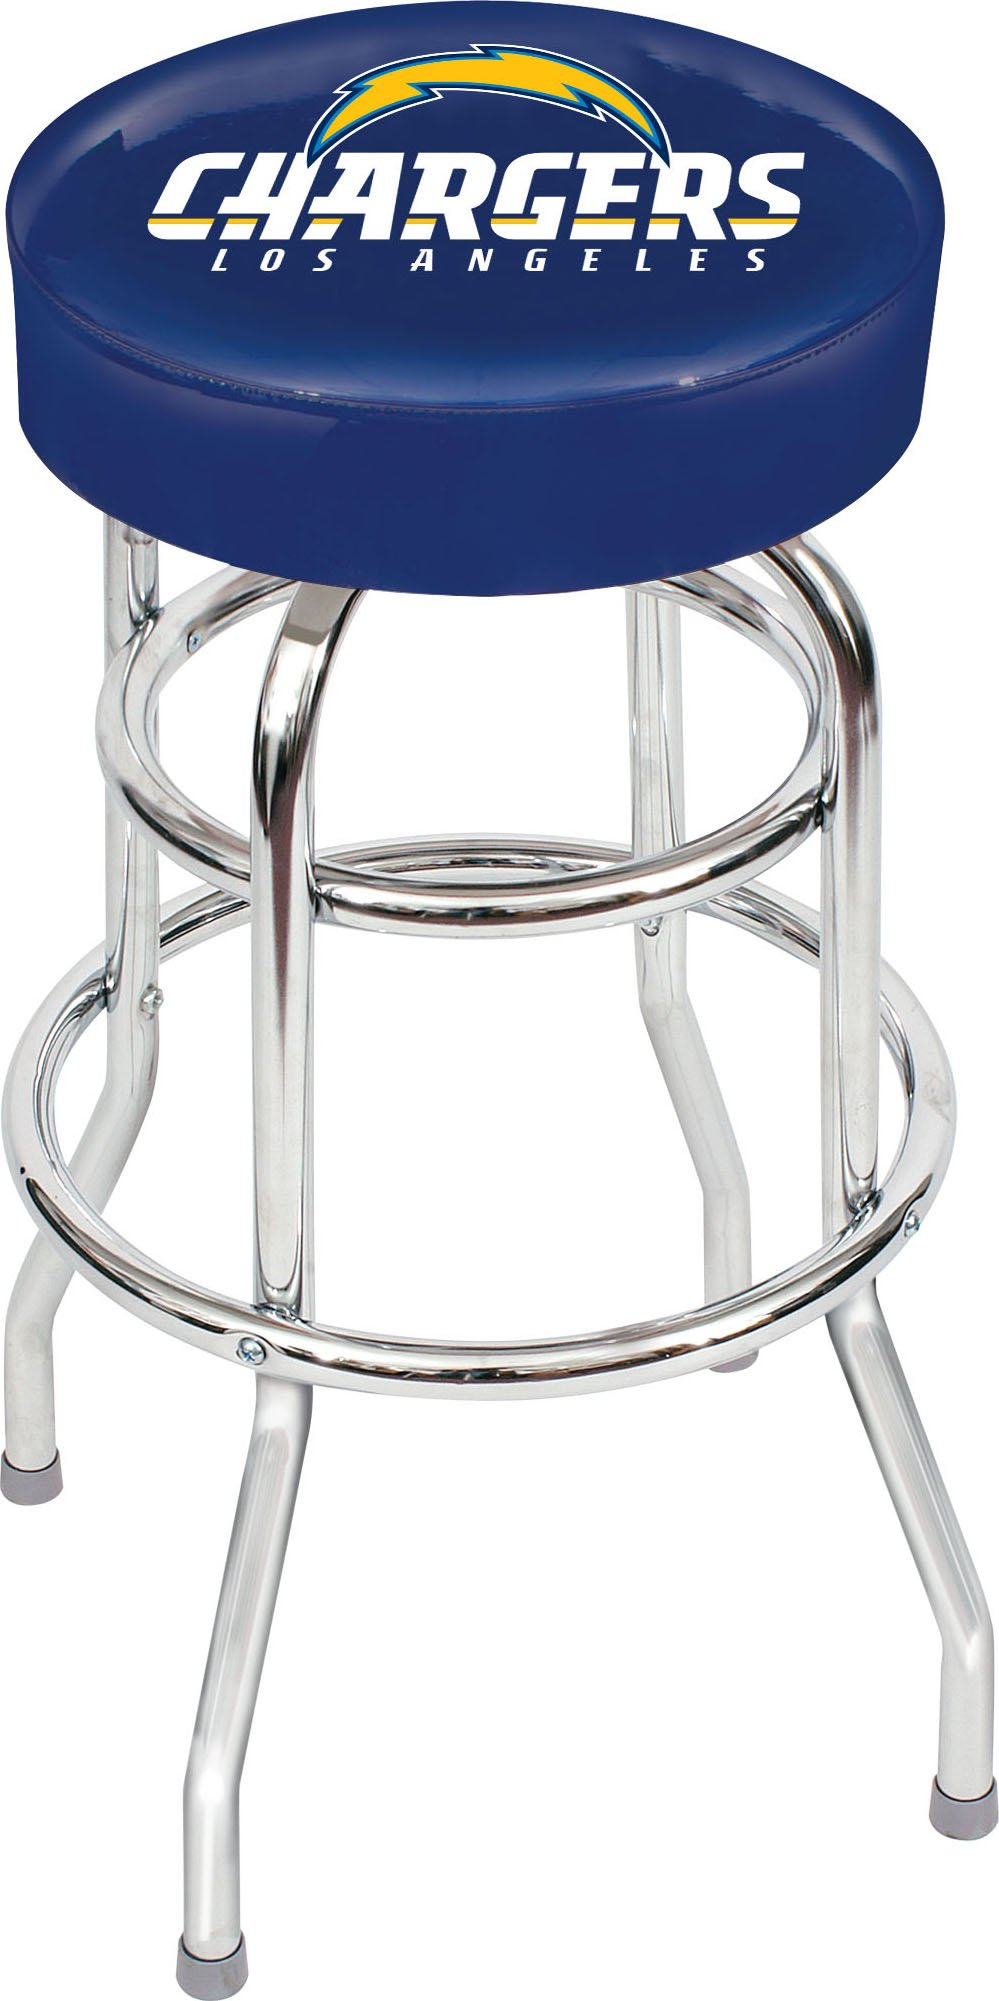 Imperial Officially Licensed NFL Furniture: Swivel Seat Bar Stool, Los Angeles Chargers